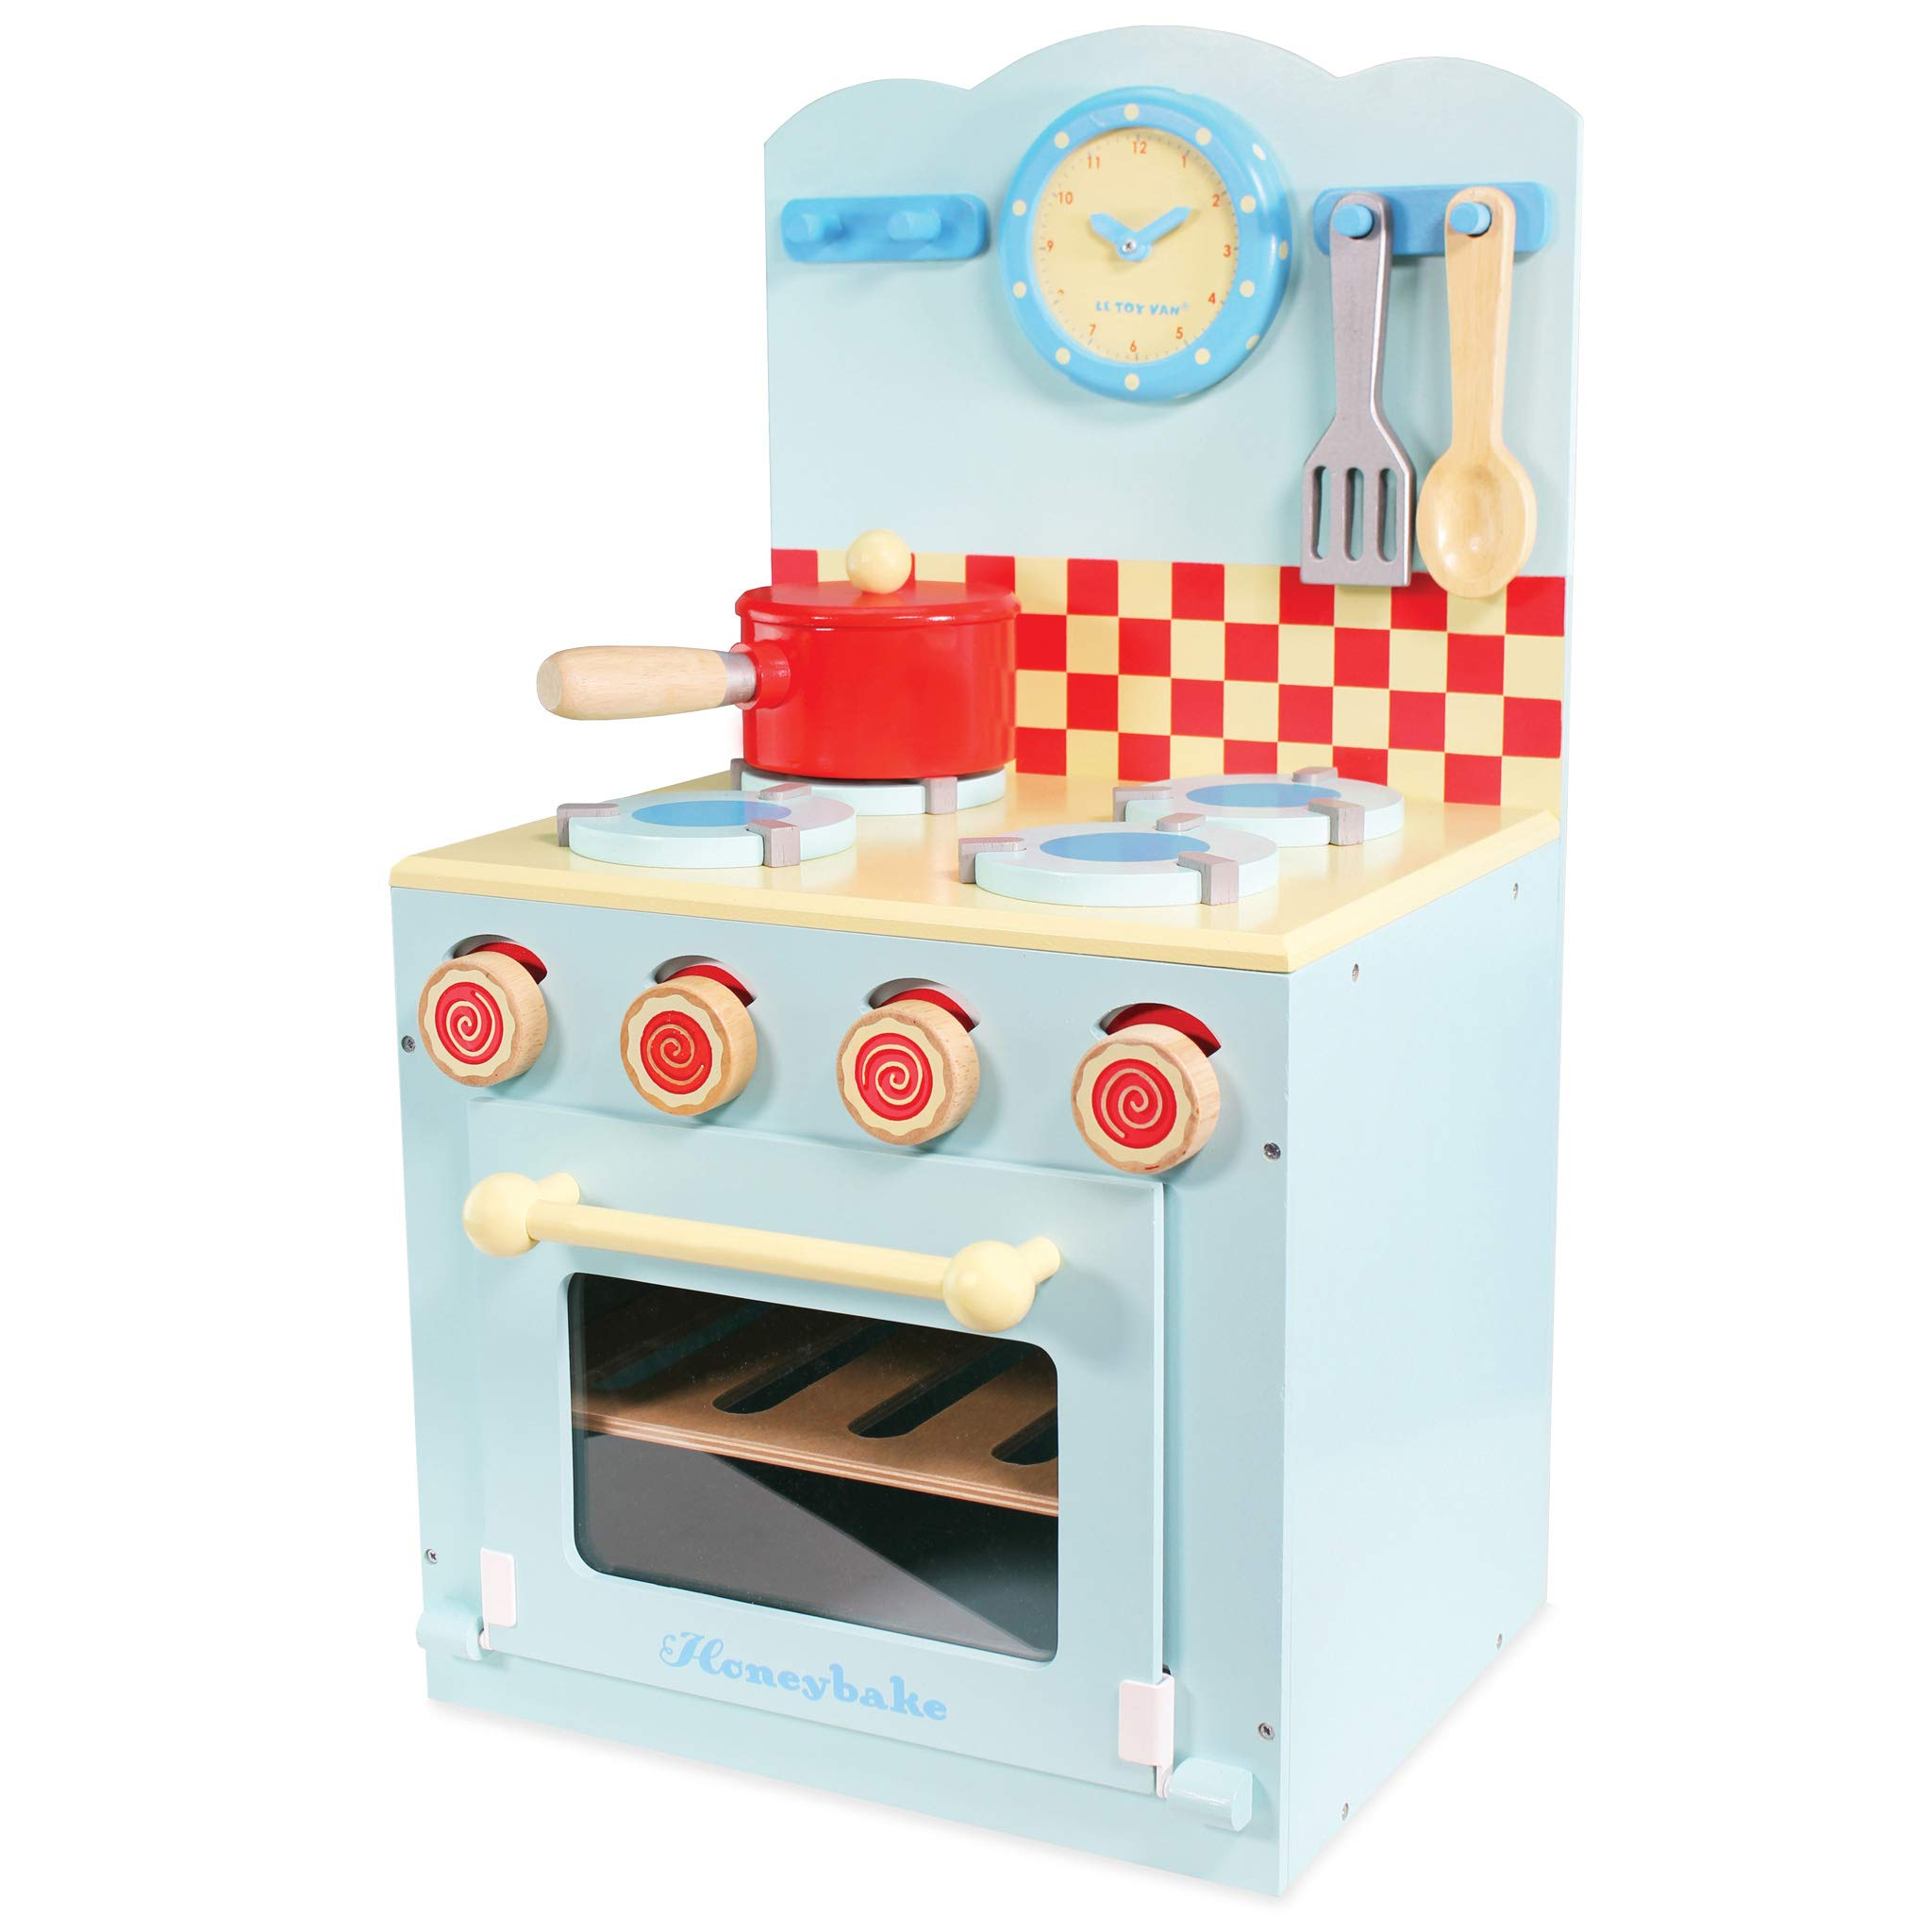 Le Toy Van Honeybake Wooden Oven and Hob Set